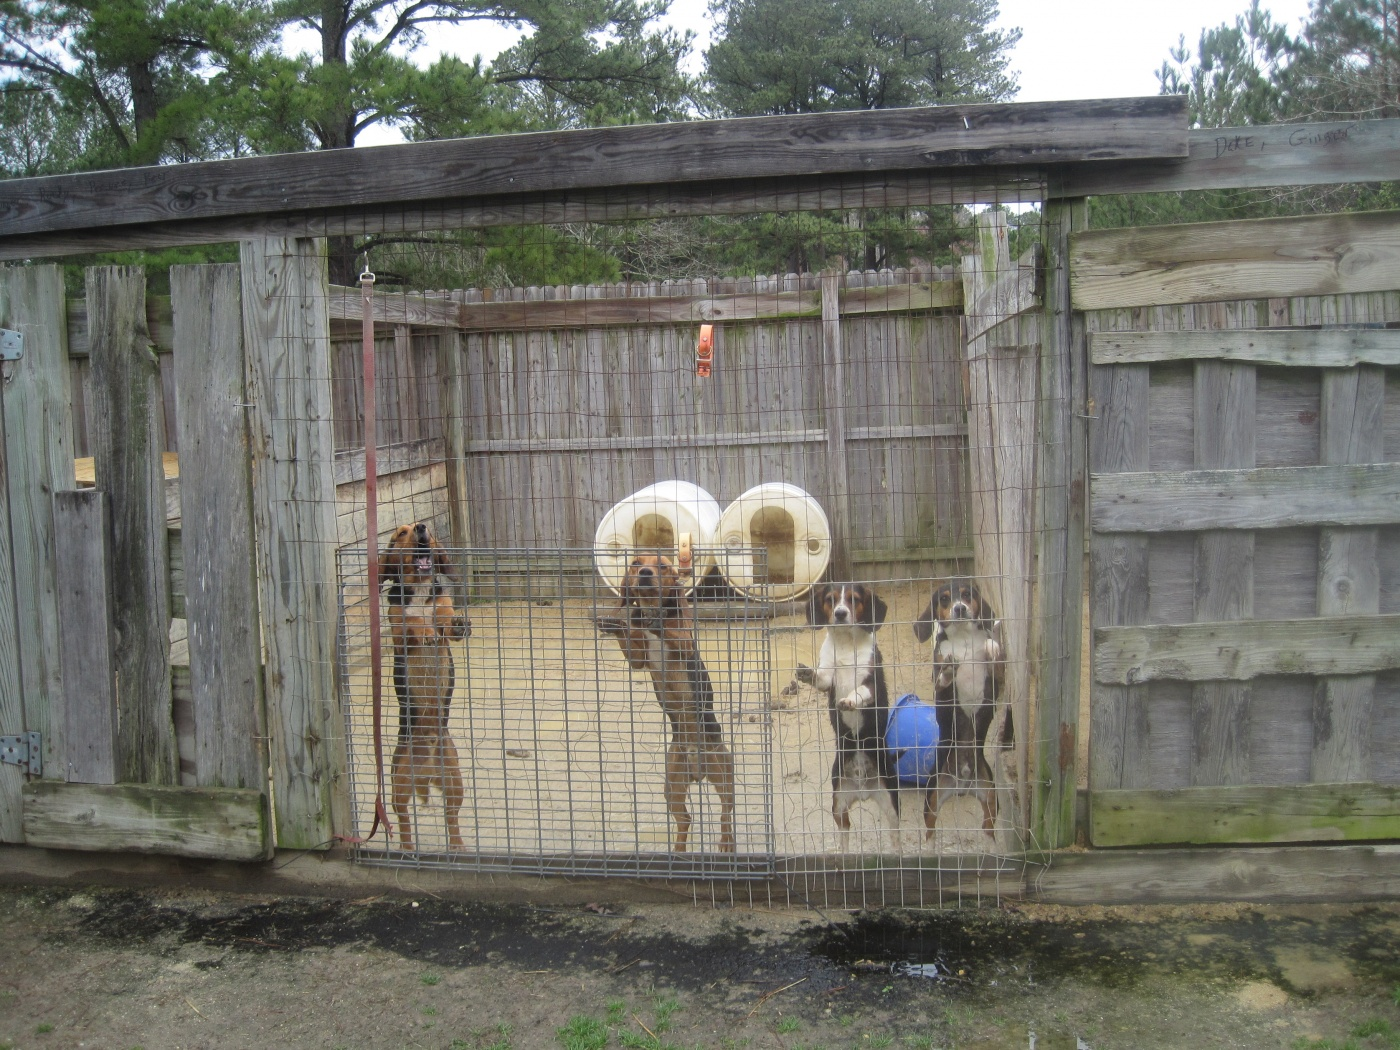 Hunting dogs often kept chained or penned and denied routine veterinary care.